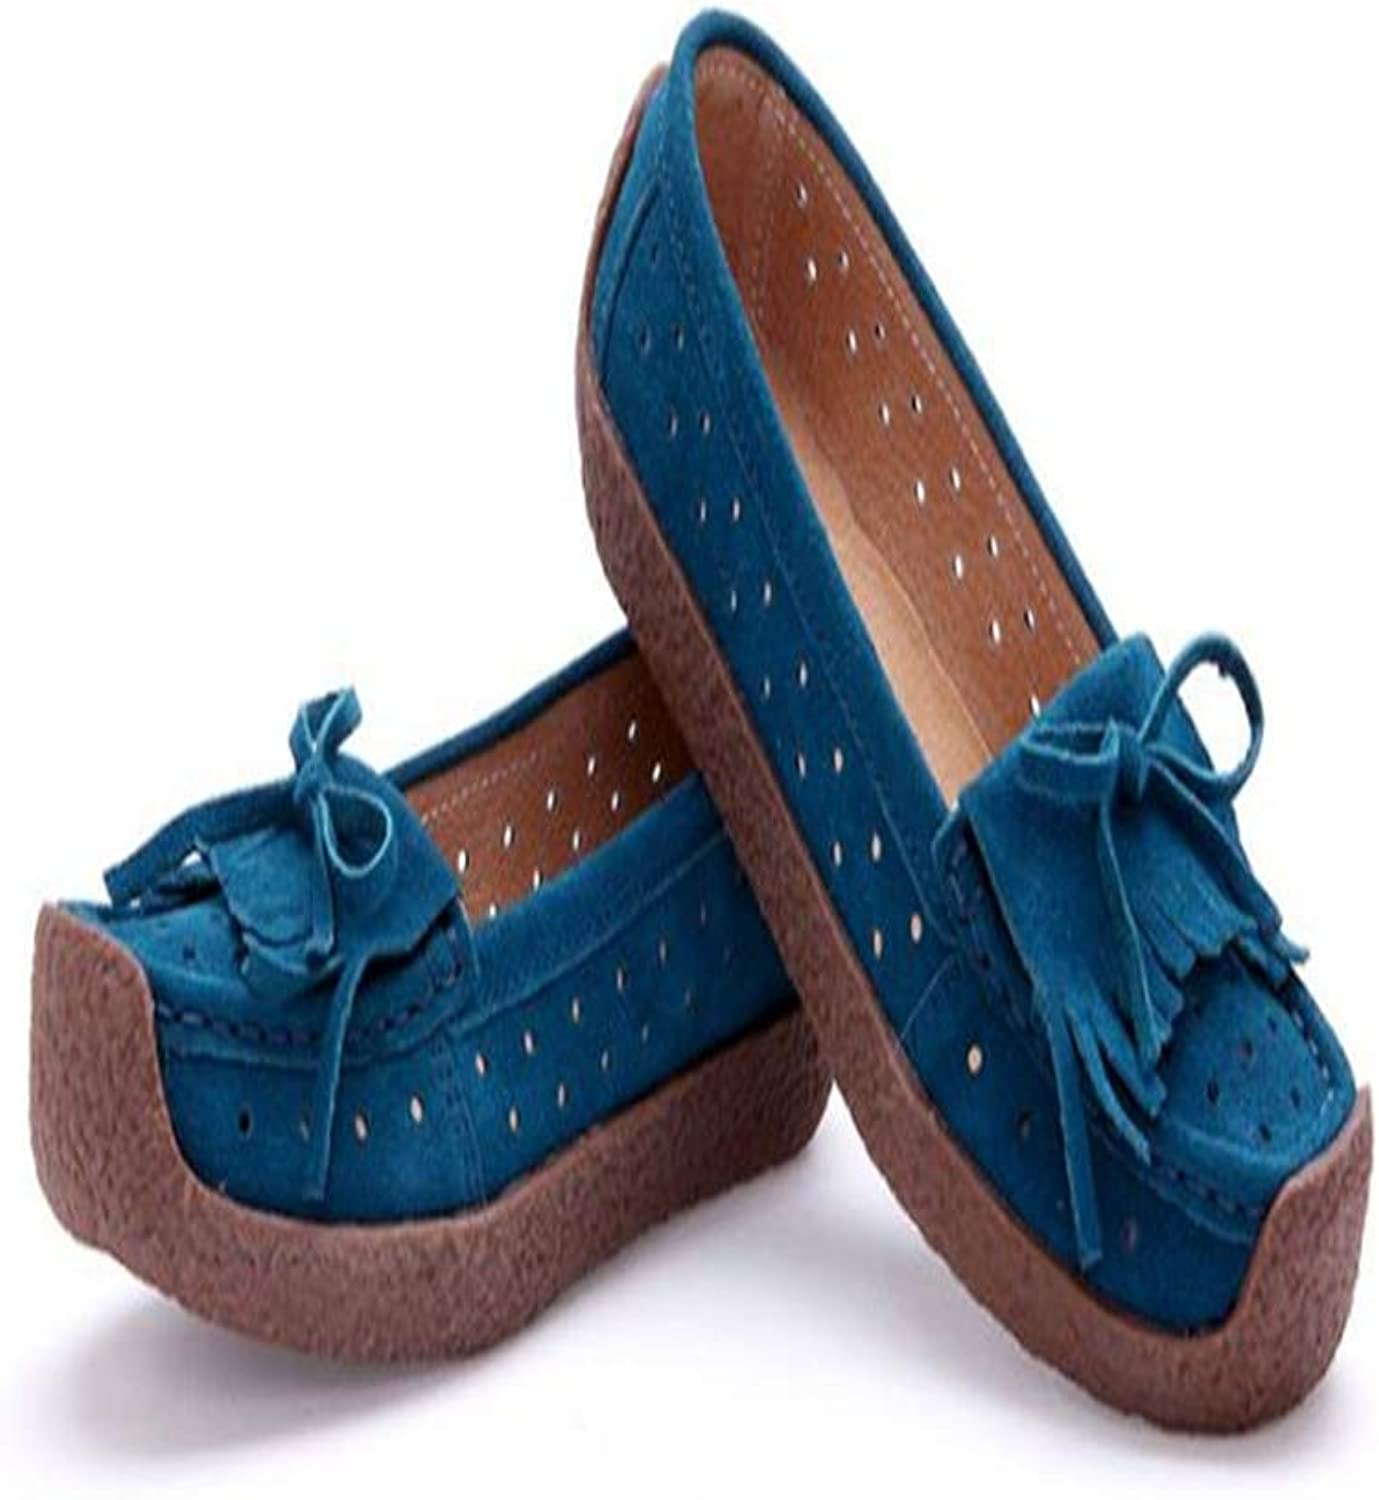 Quality.A Driving shoes Retro Women's shoes Flat shoes Loafers Walking shoes